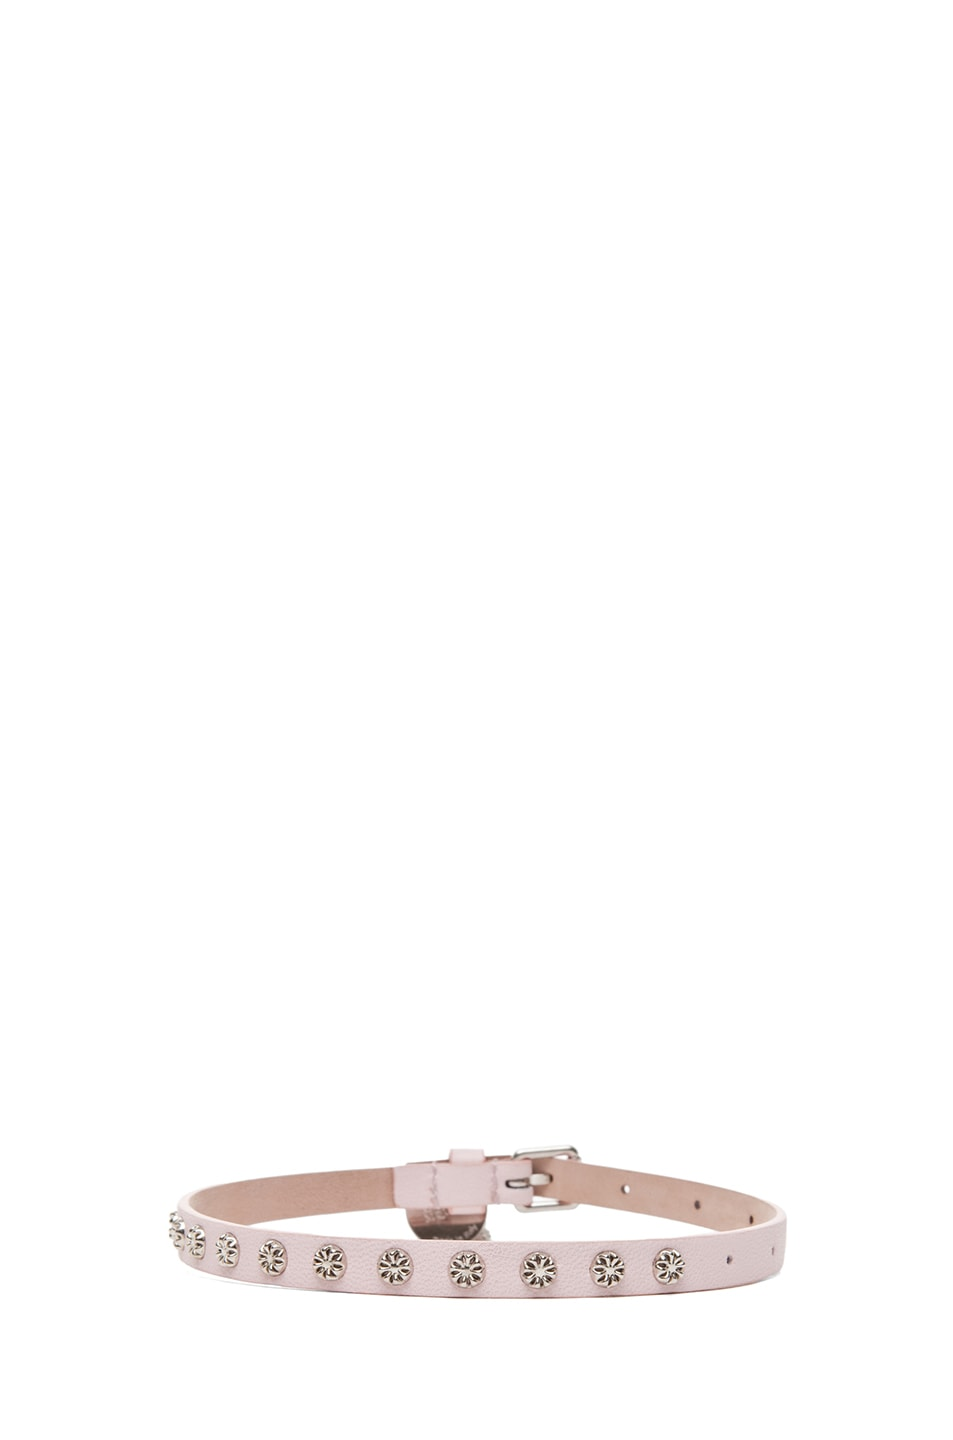 Image 3 of Alexander McQueen Double Wrap Skull Studded Bracelet in Ice Pink